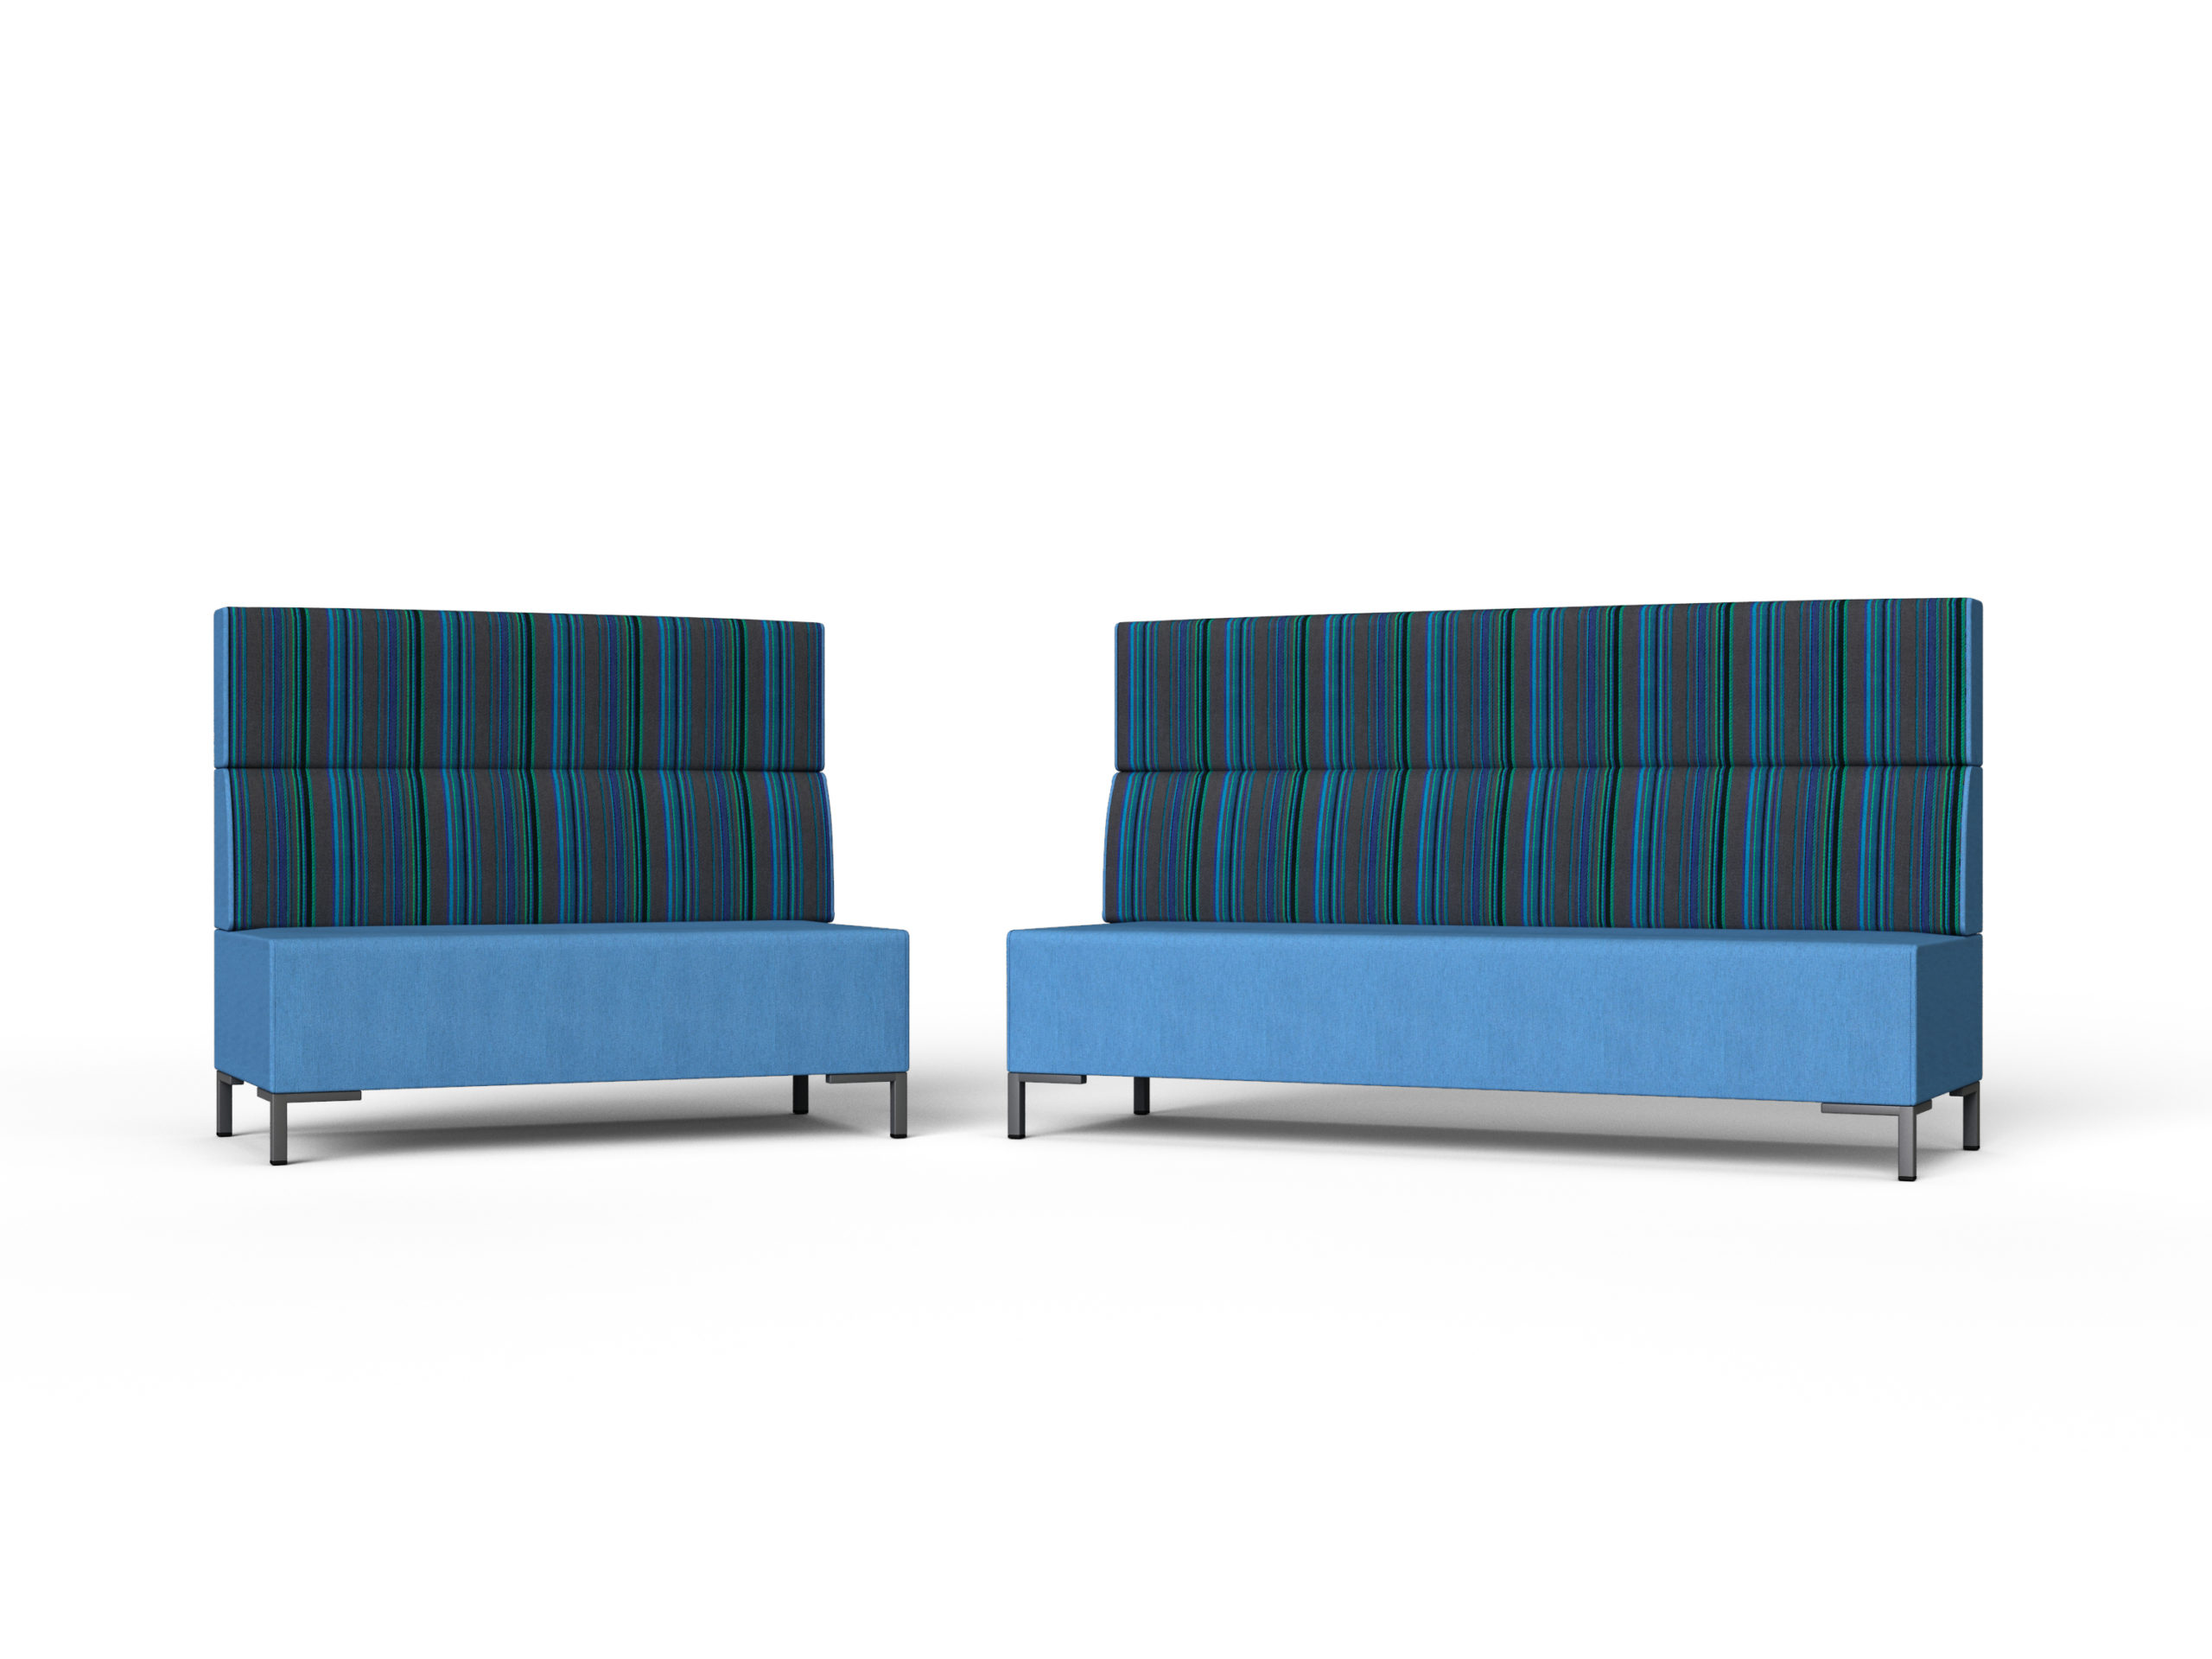 high backed soft seating for school office university sound trapping